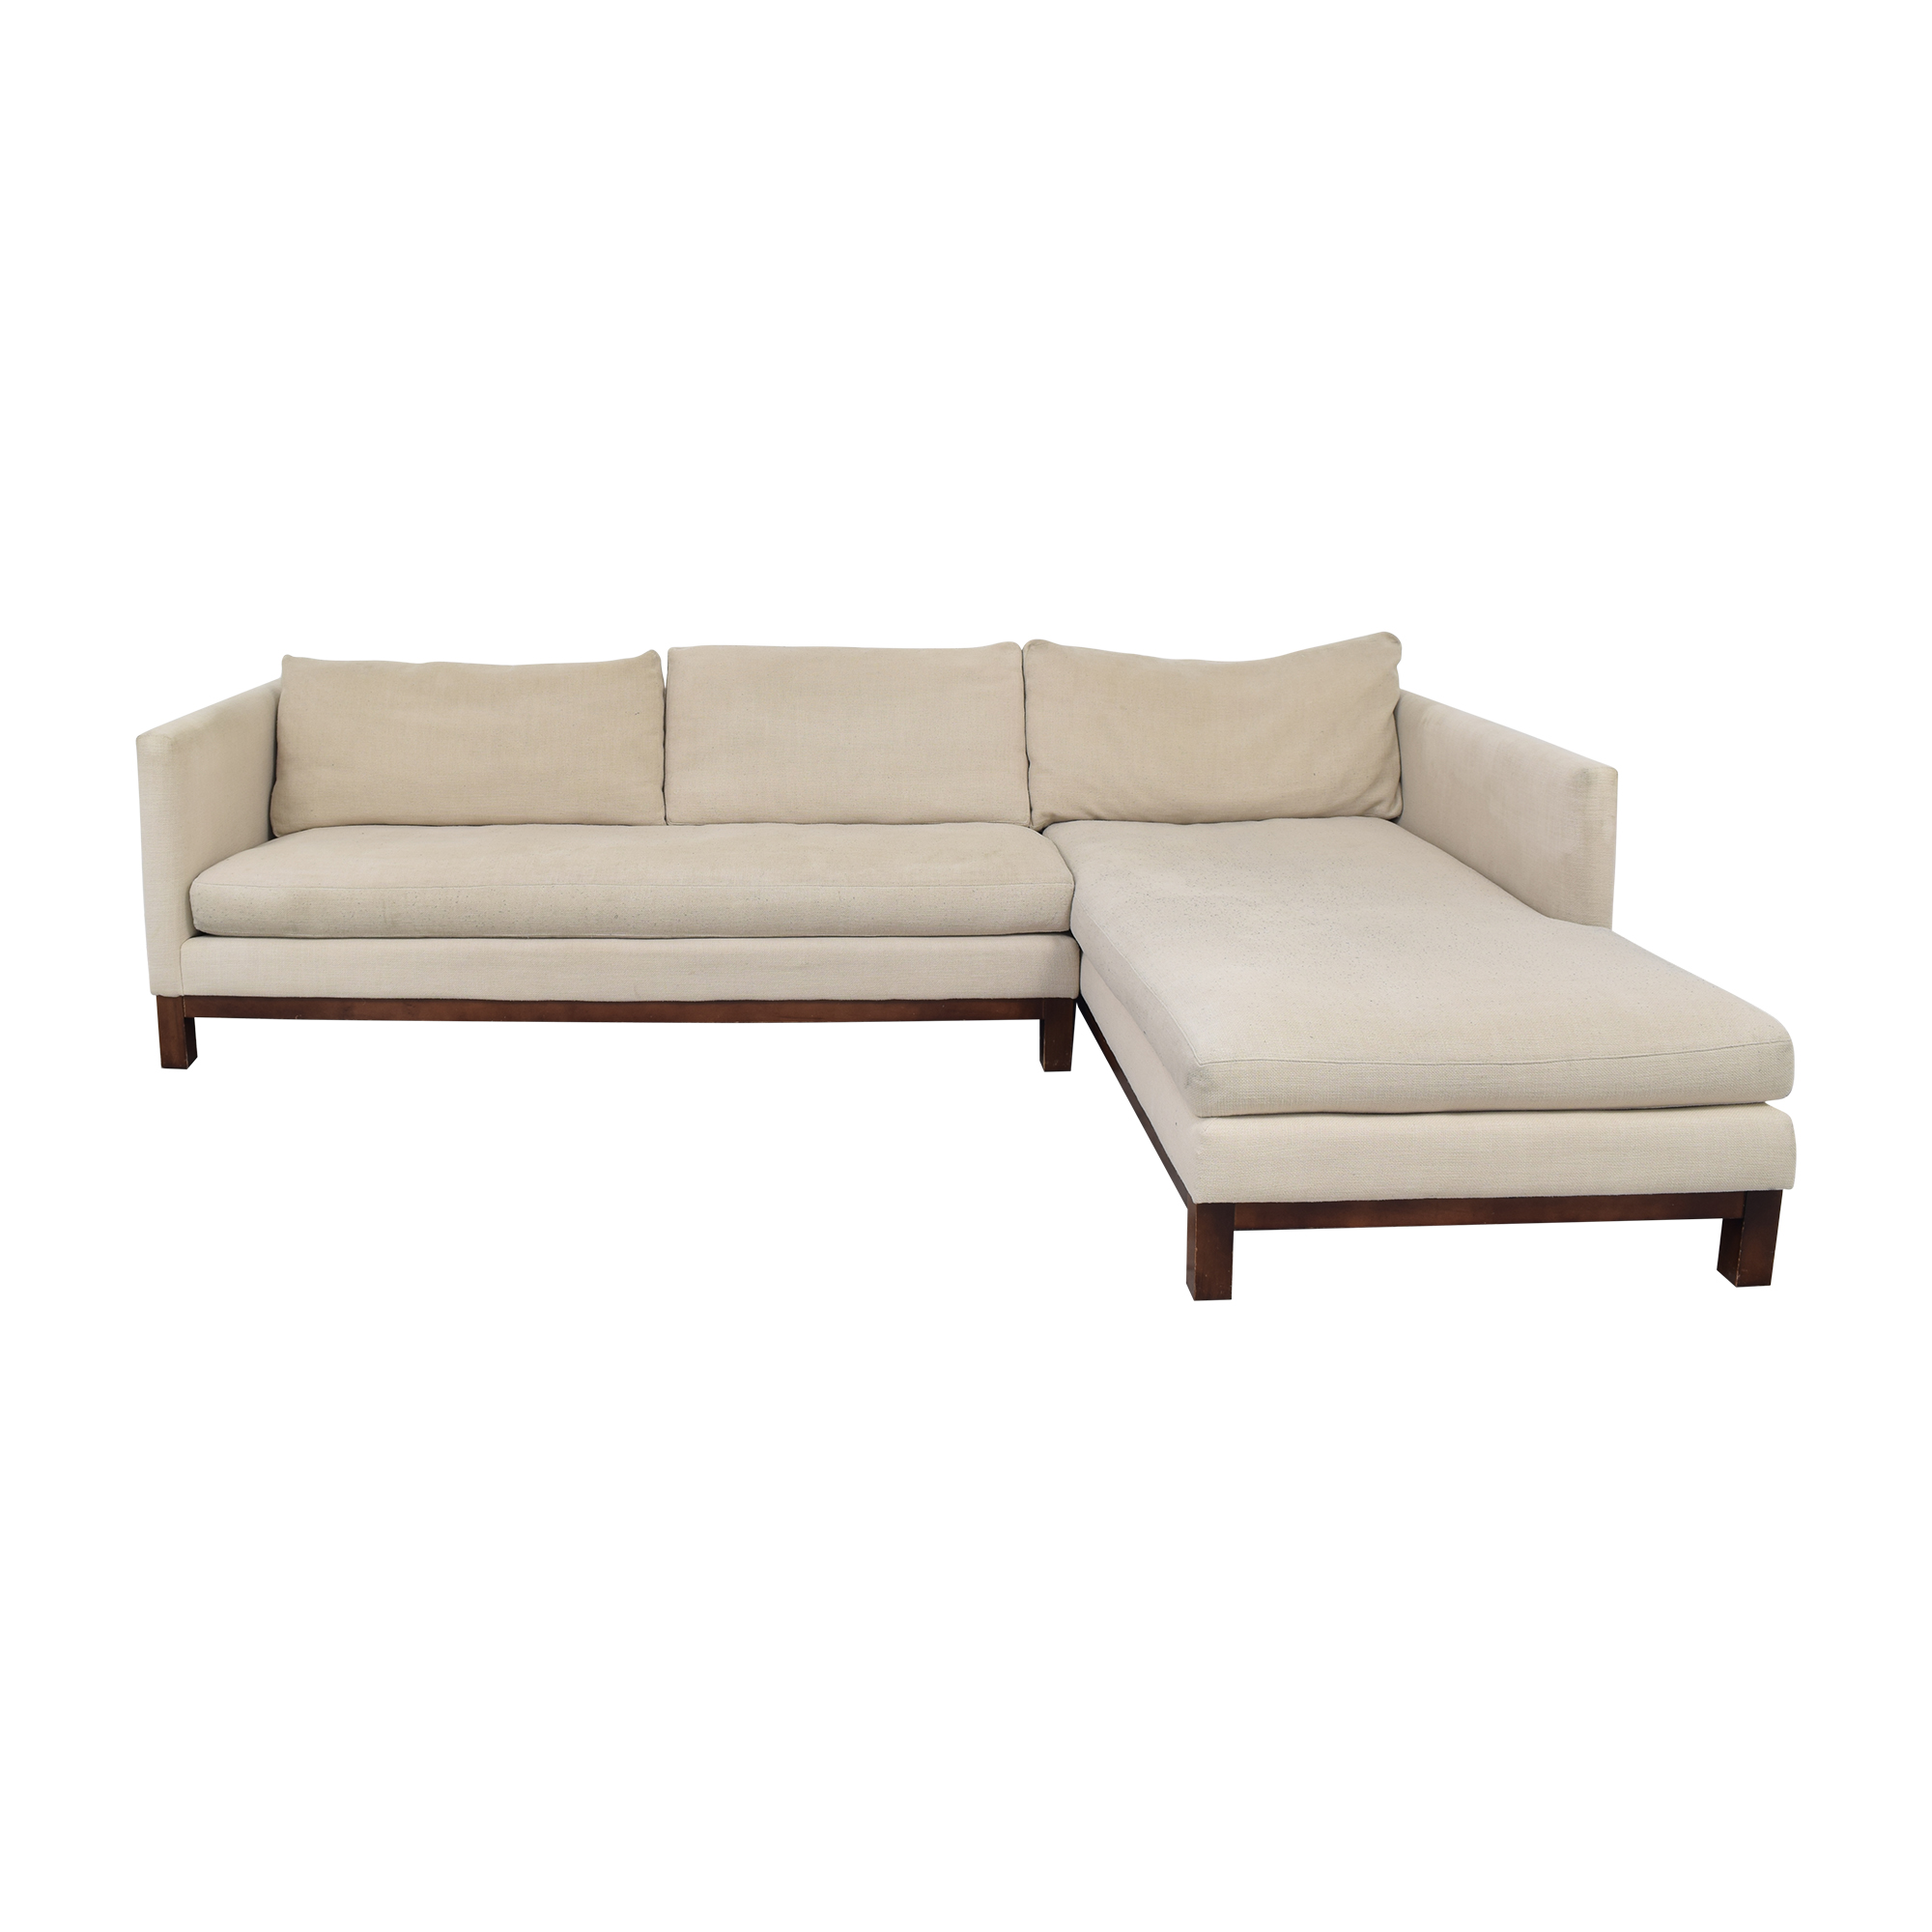 shop ABC Carpet & Home Cobble Hill Sectional Sofa ABC Carpet & Home Sofas